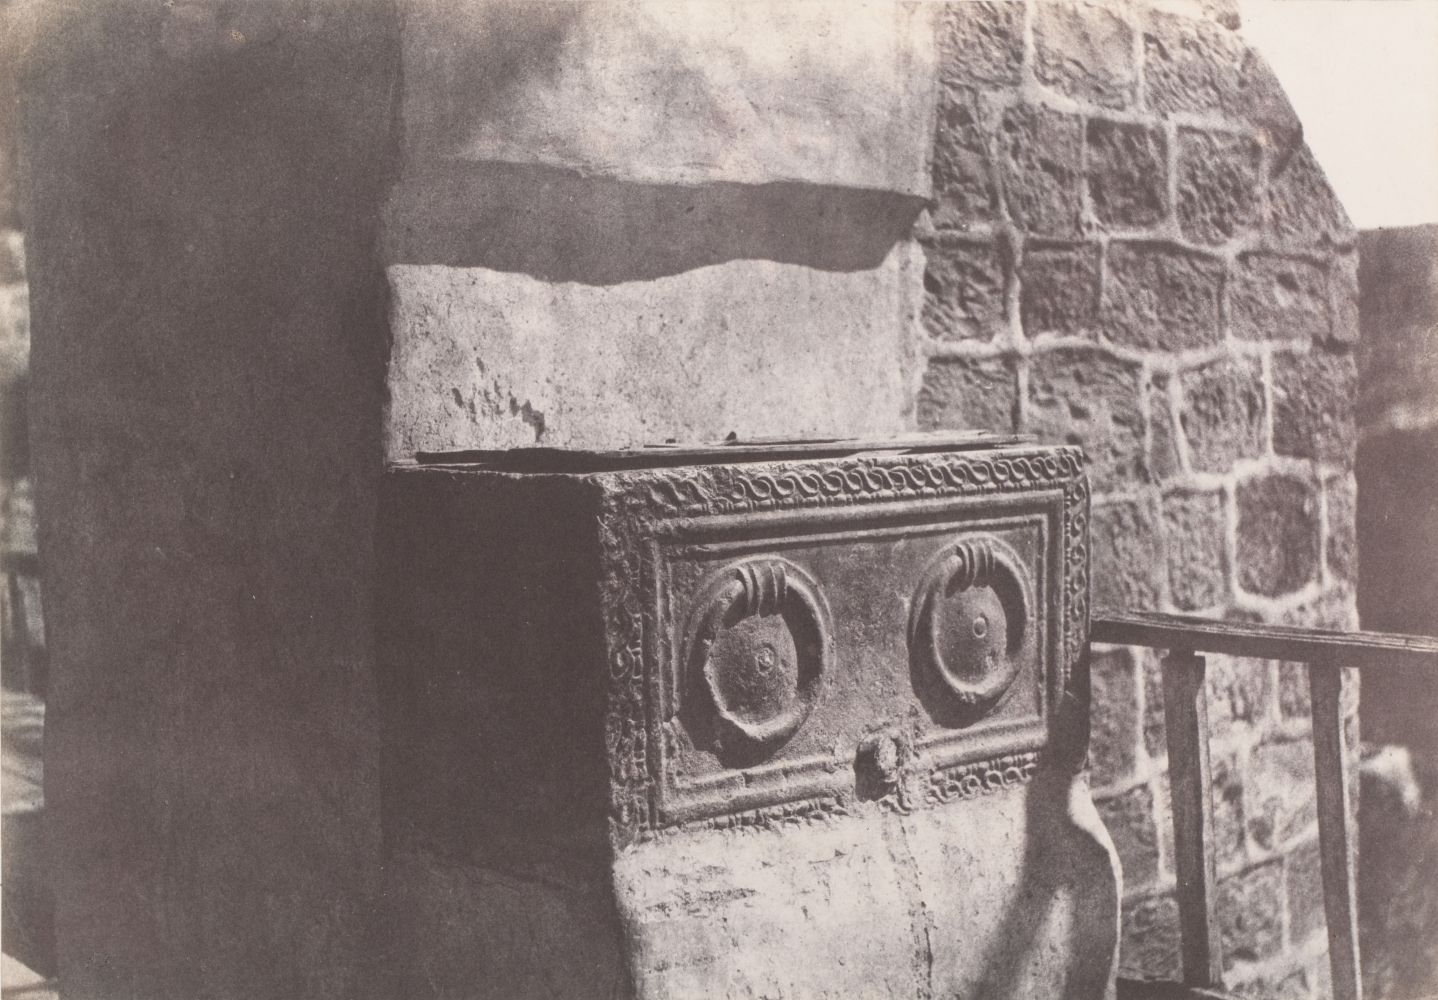 """Auguste SALZMANN (French, 1824-1872) """"Jérusalem. Sarcophage Judaïque"""", 1854 Blanquart-Évrard process salt print from a paper negative 23.2 x 33.2 cm mounted on 45.0 x 56.6 cm paper Title and credits lithographed on mount"""